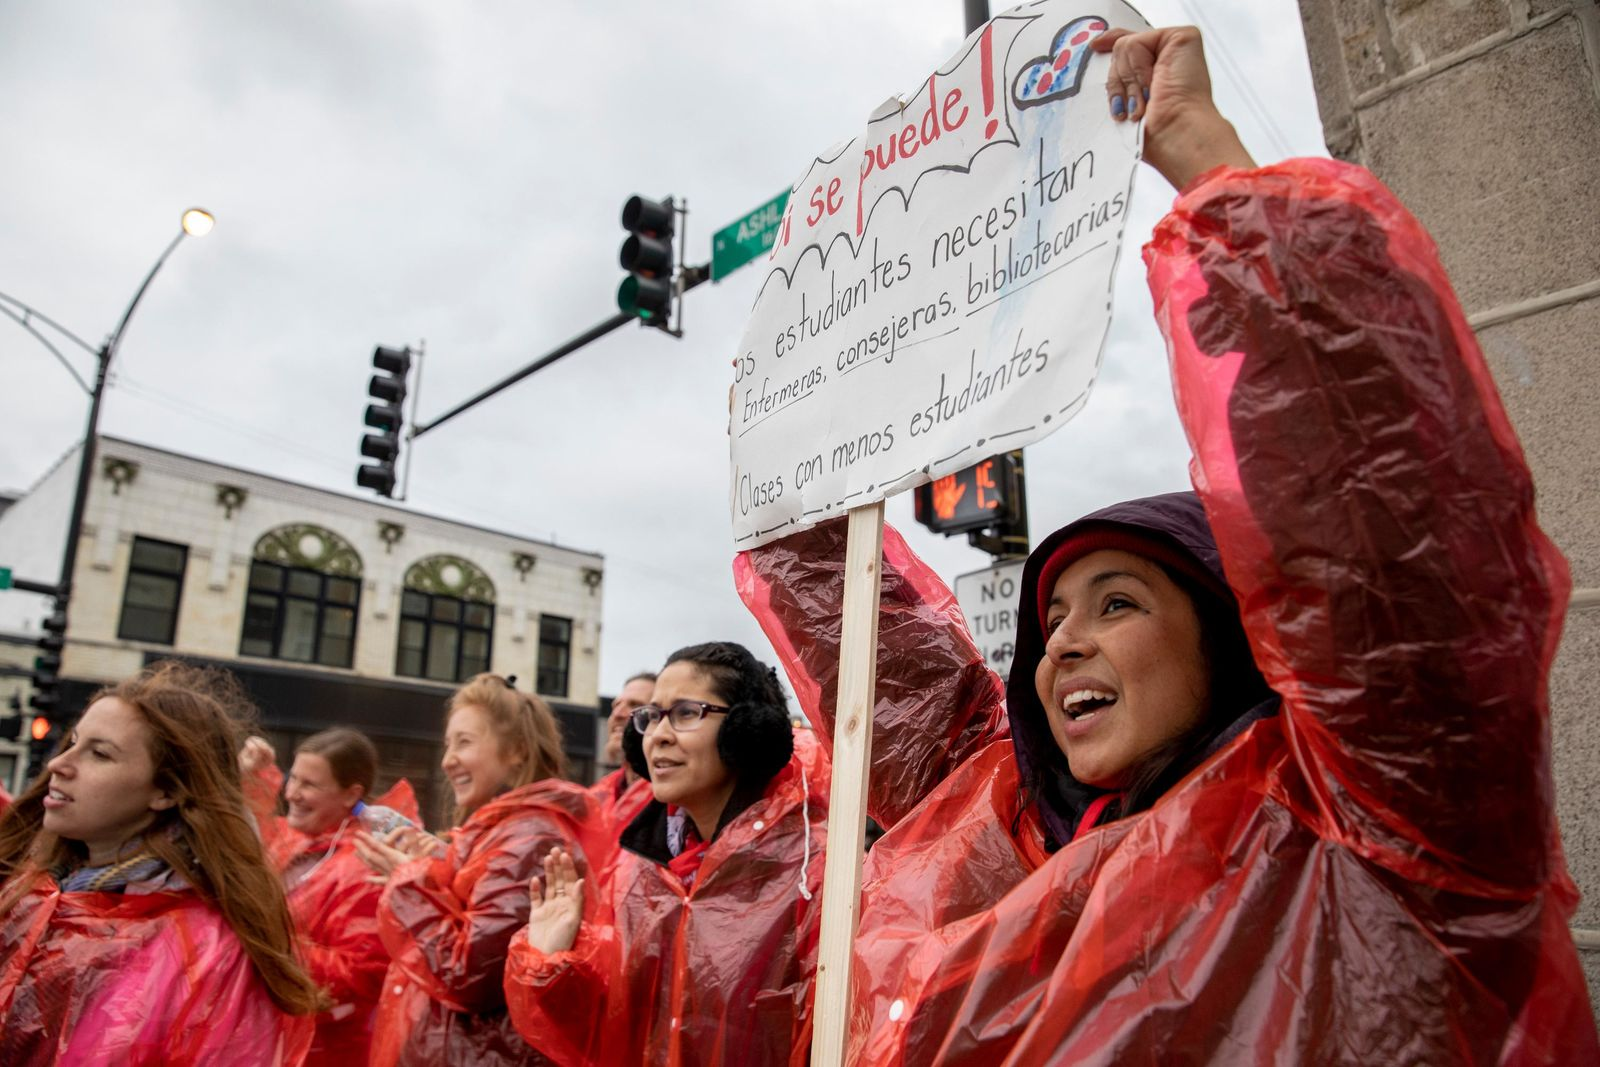 Faculty from Talcott Fine Arts and Museum Academy strike with the Chicago Teachers Union on the corner of N. Ashland Avenue and W. Chicago Avenue in West Town of Chicago on Monday, Oct. 21, 2019. (Camille Fine/Chicago Tribune via AP)